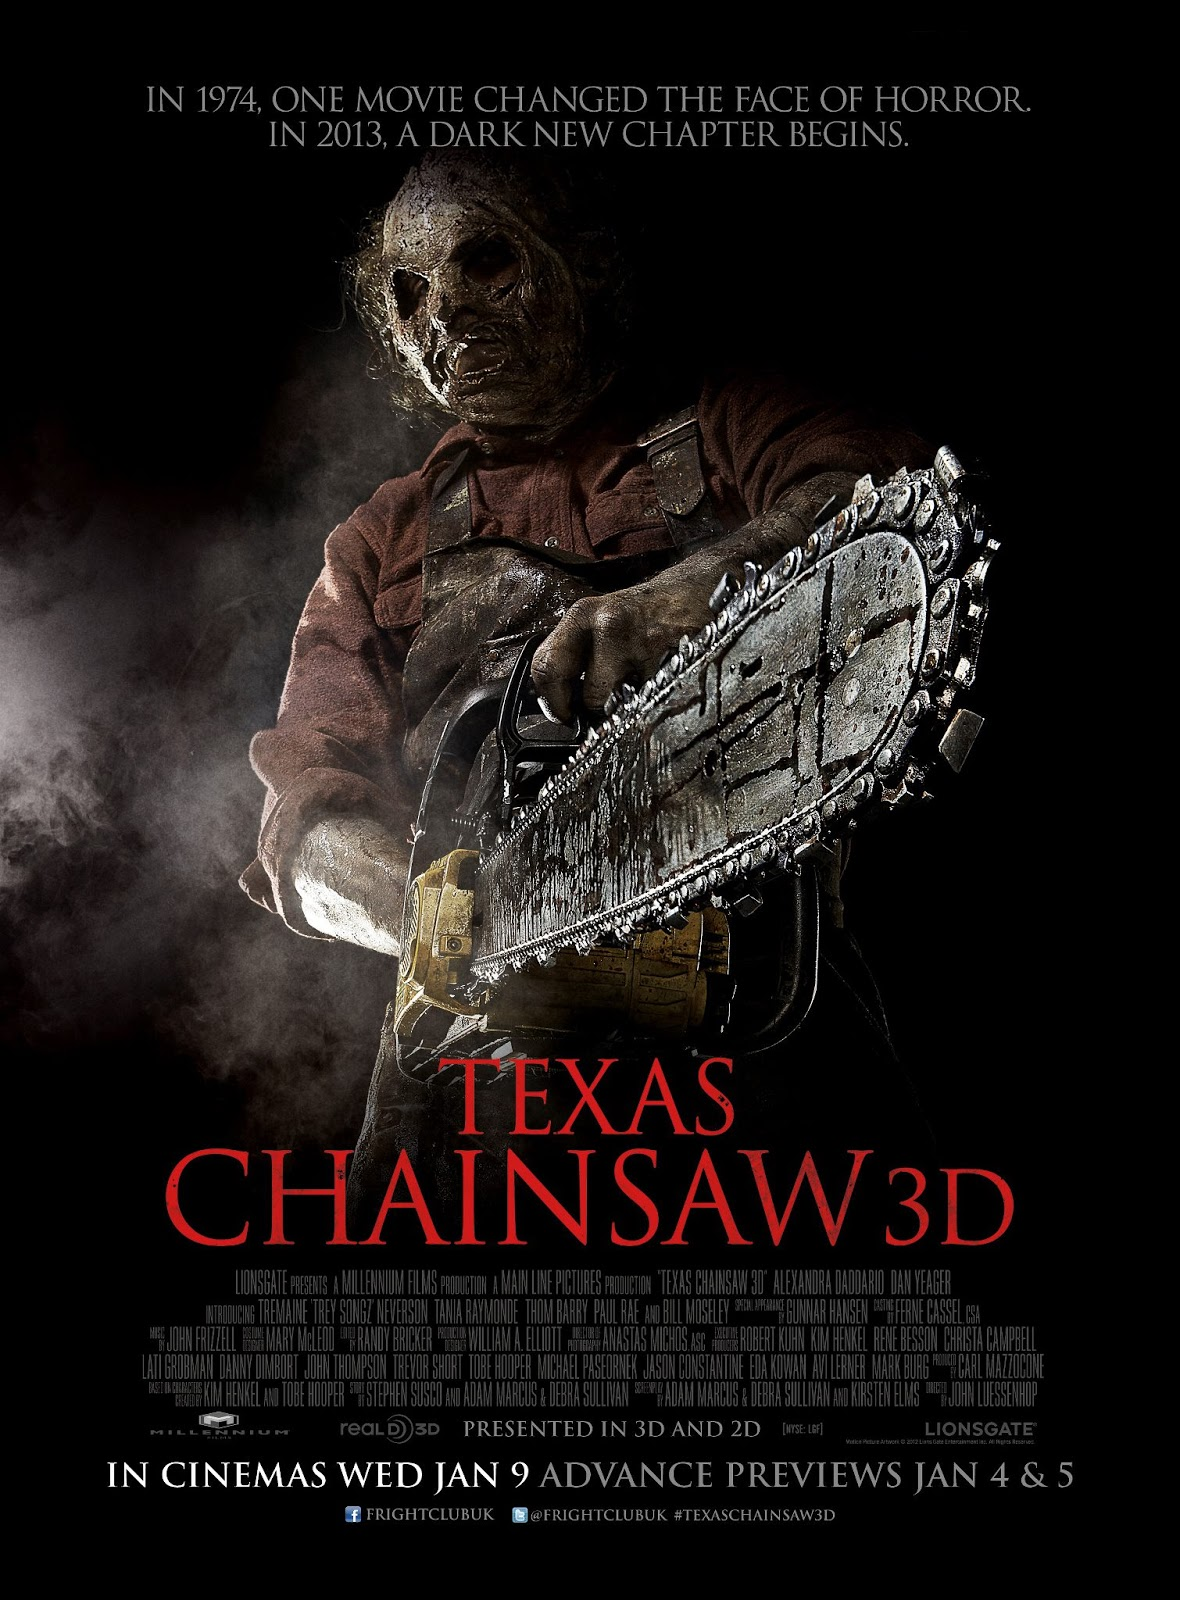 Texas Chainsaw Massacre 2013